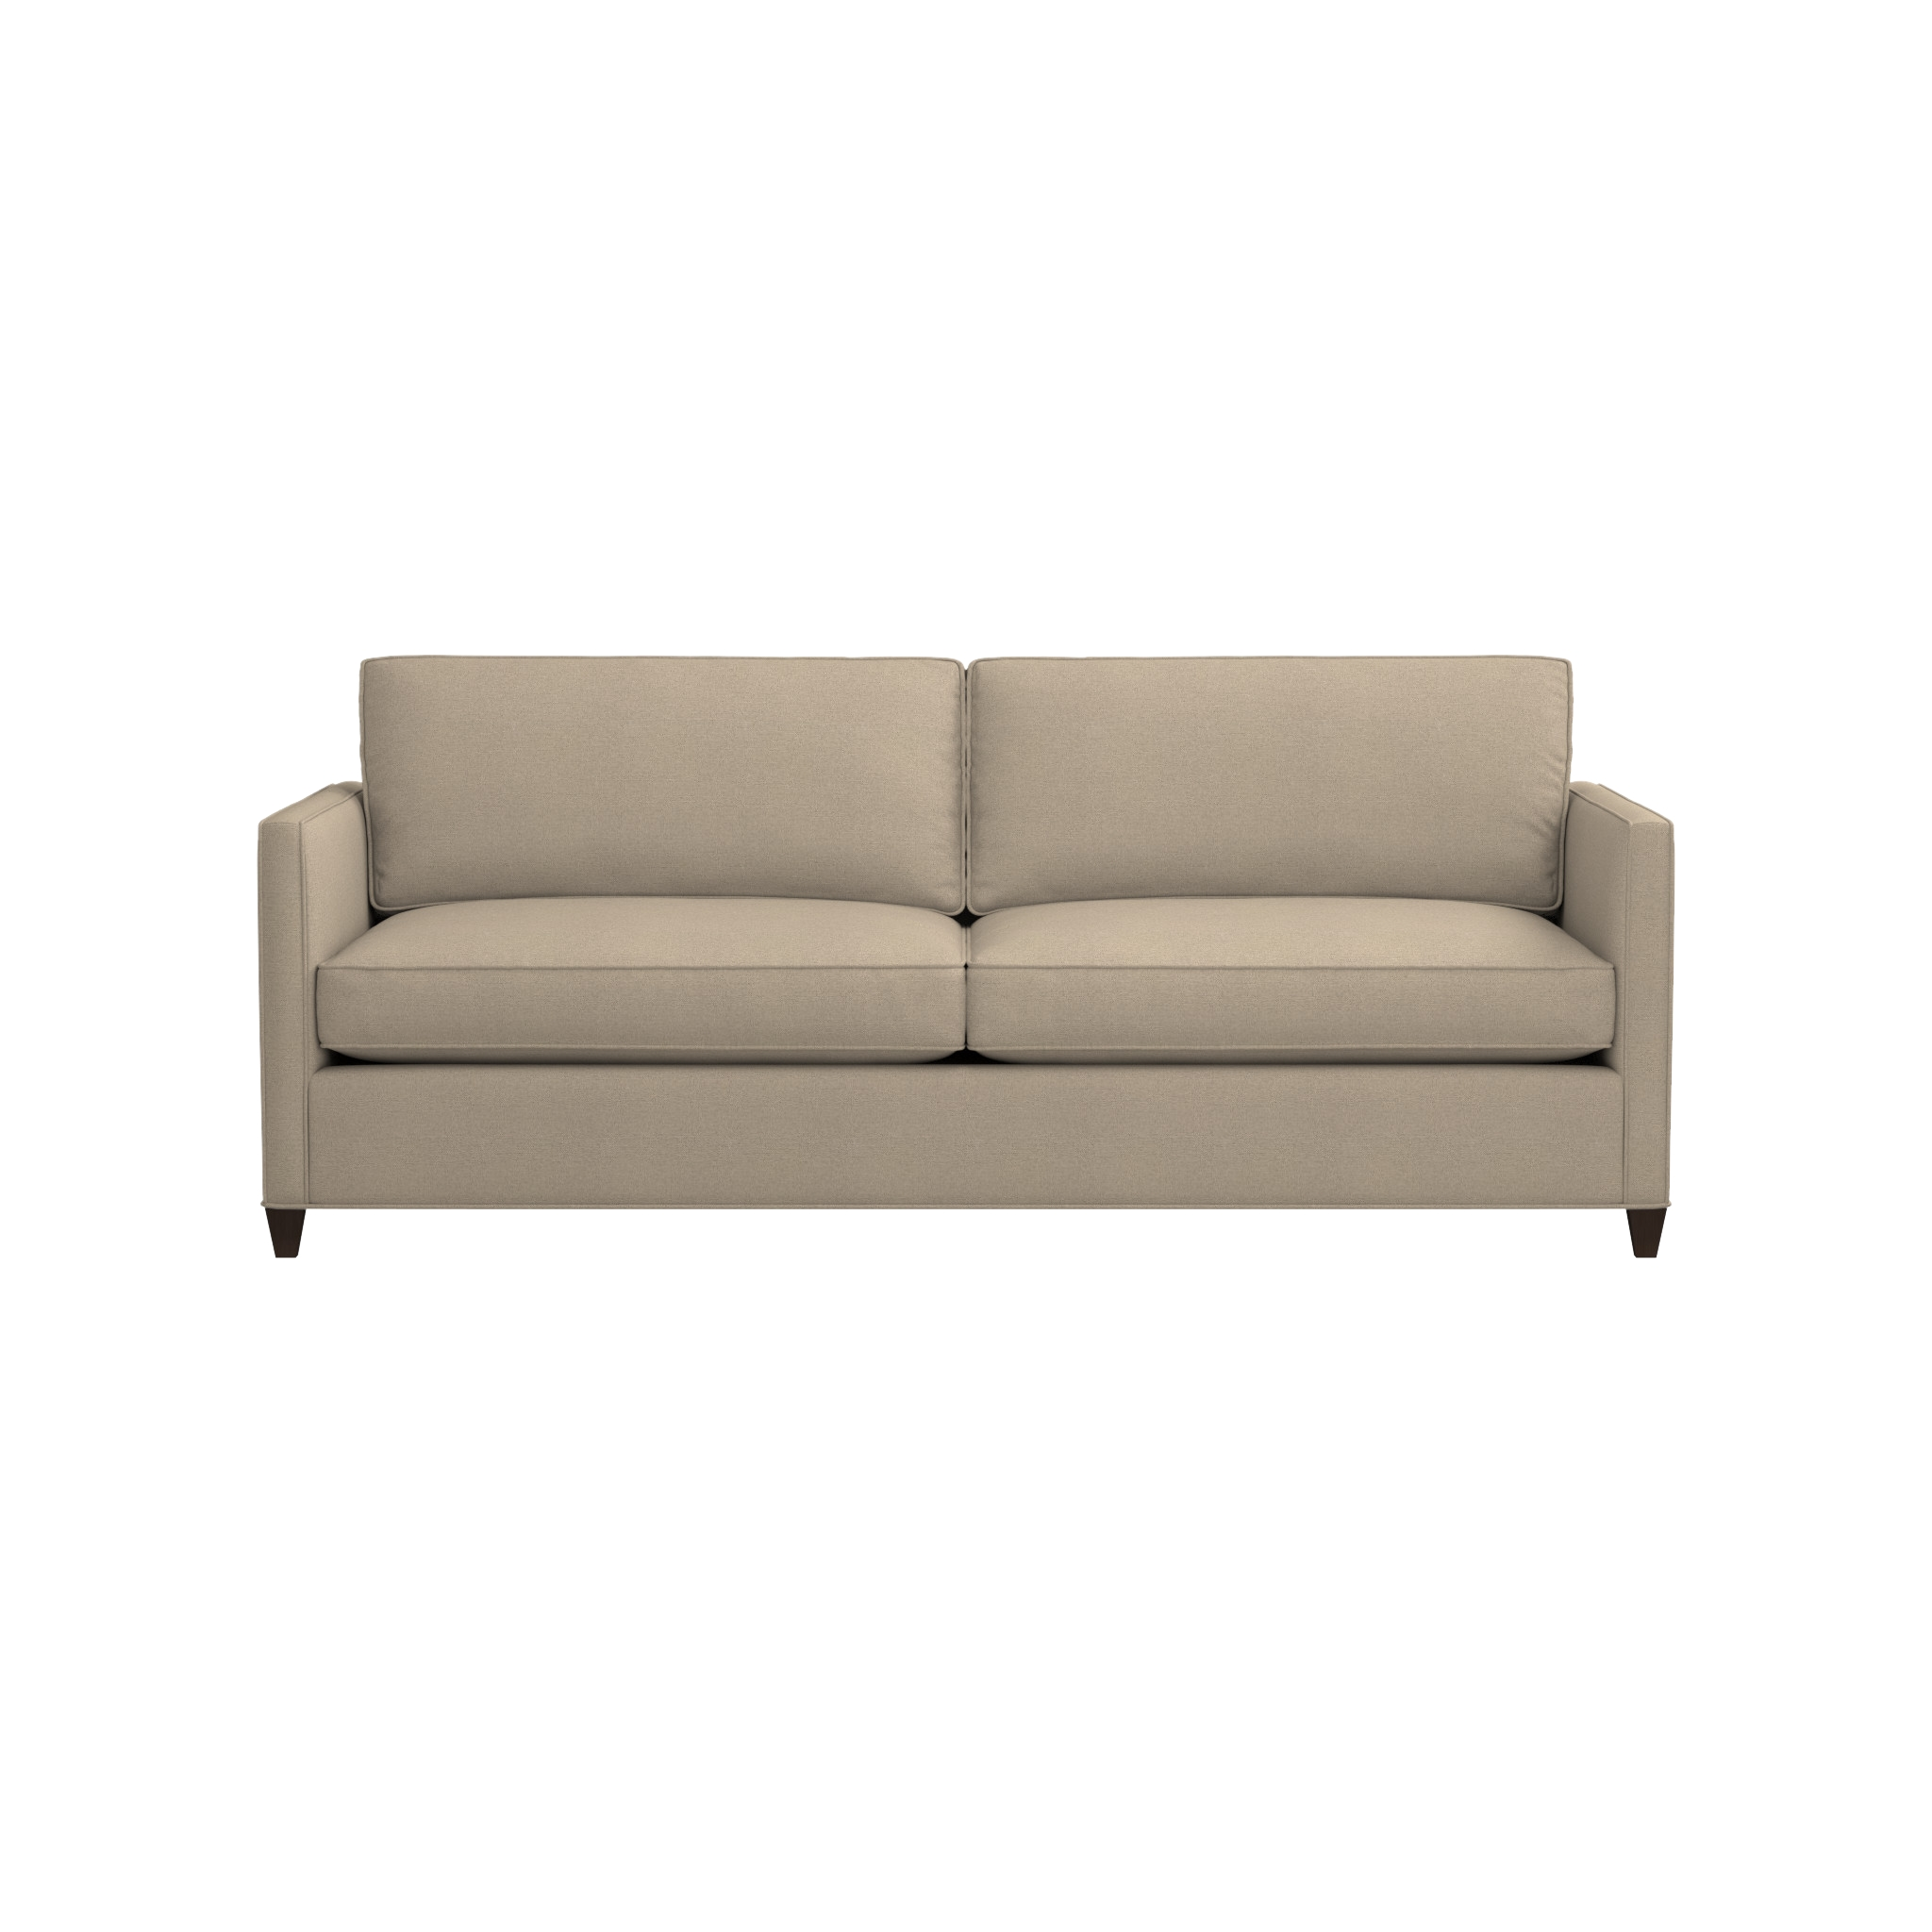 Furniture: Wrap Around Couch | Sears Furniture Outlet | Camden Sofa Pertaining To Sears Sofa (View 3 of 20)